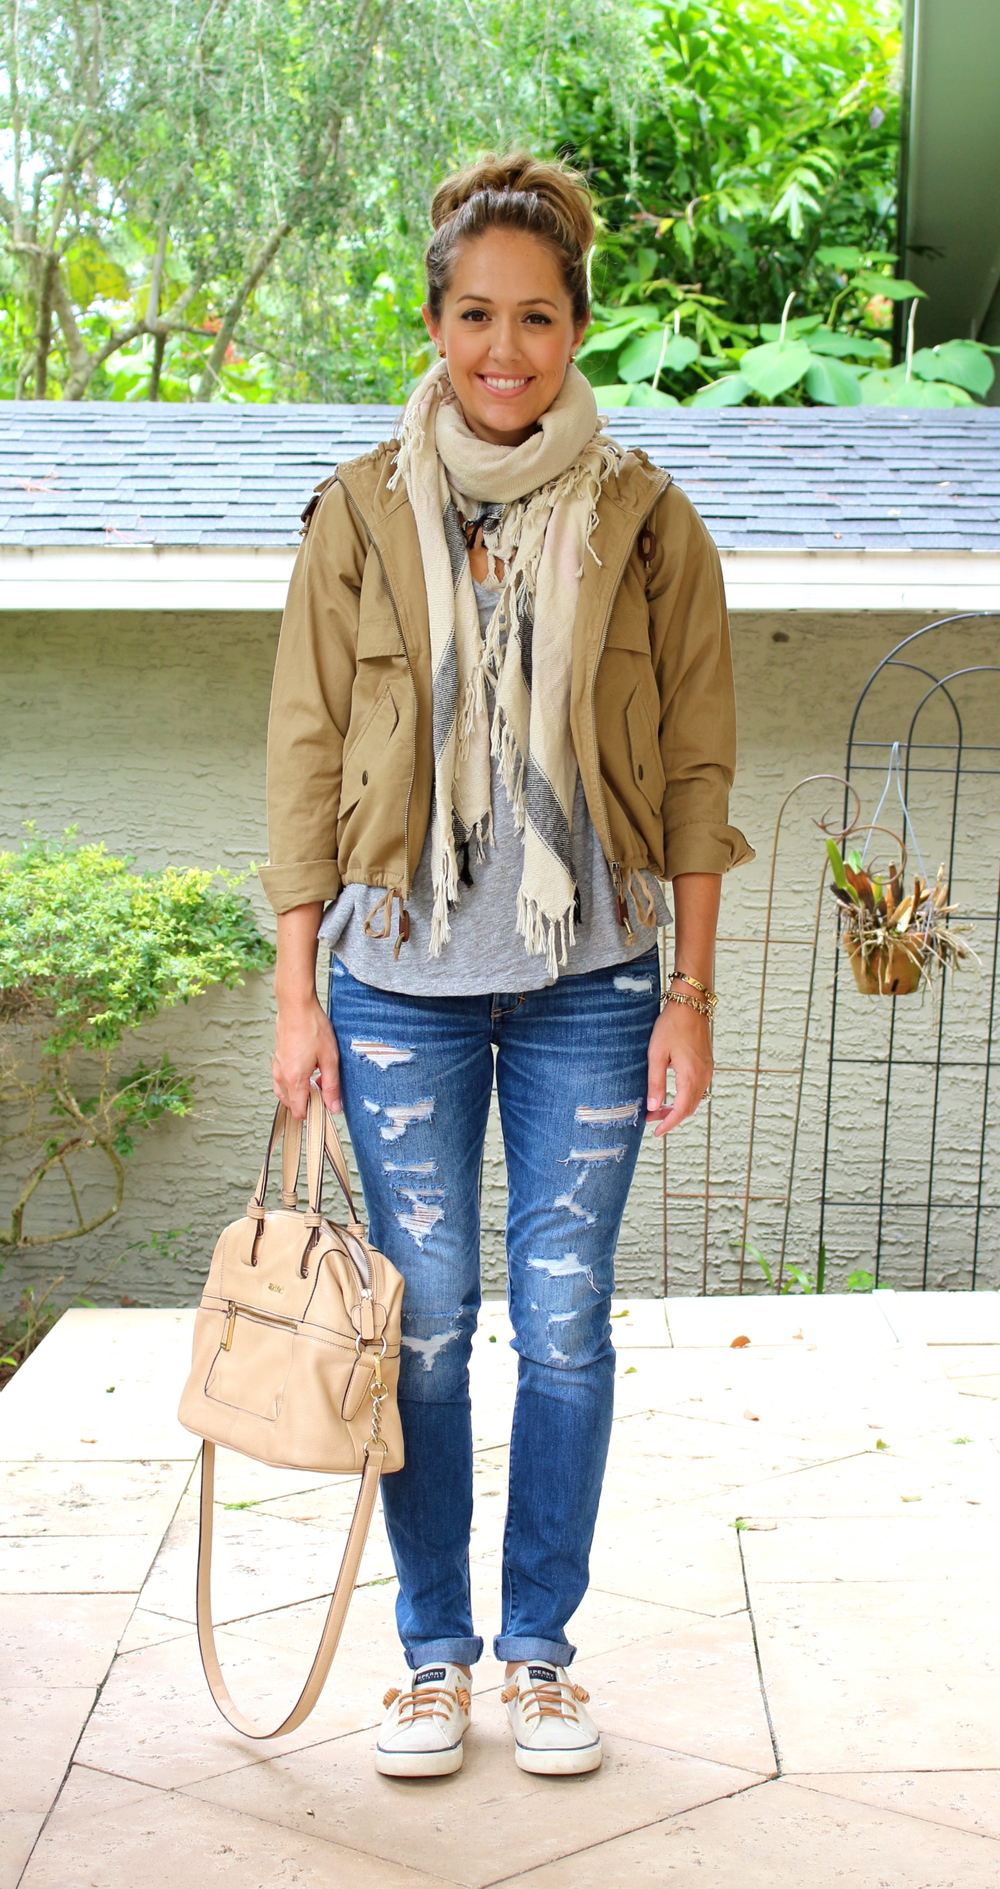 LOFT anorak and scarf, distressed jeans, Sperrys